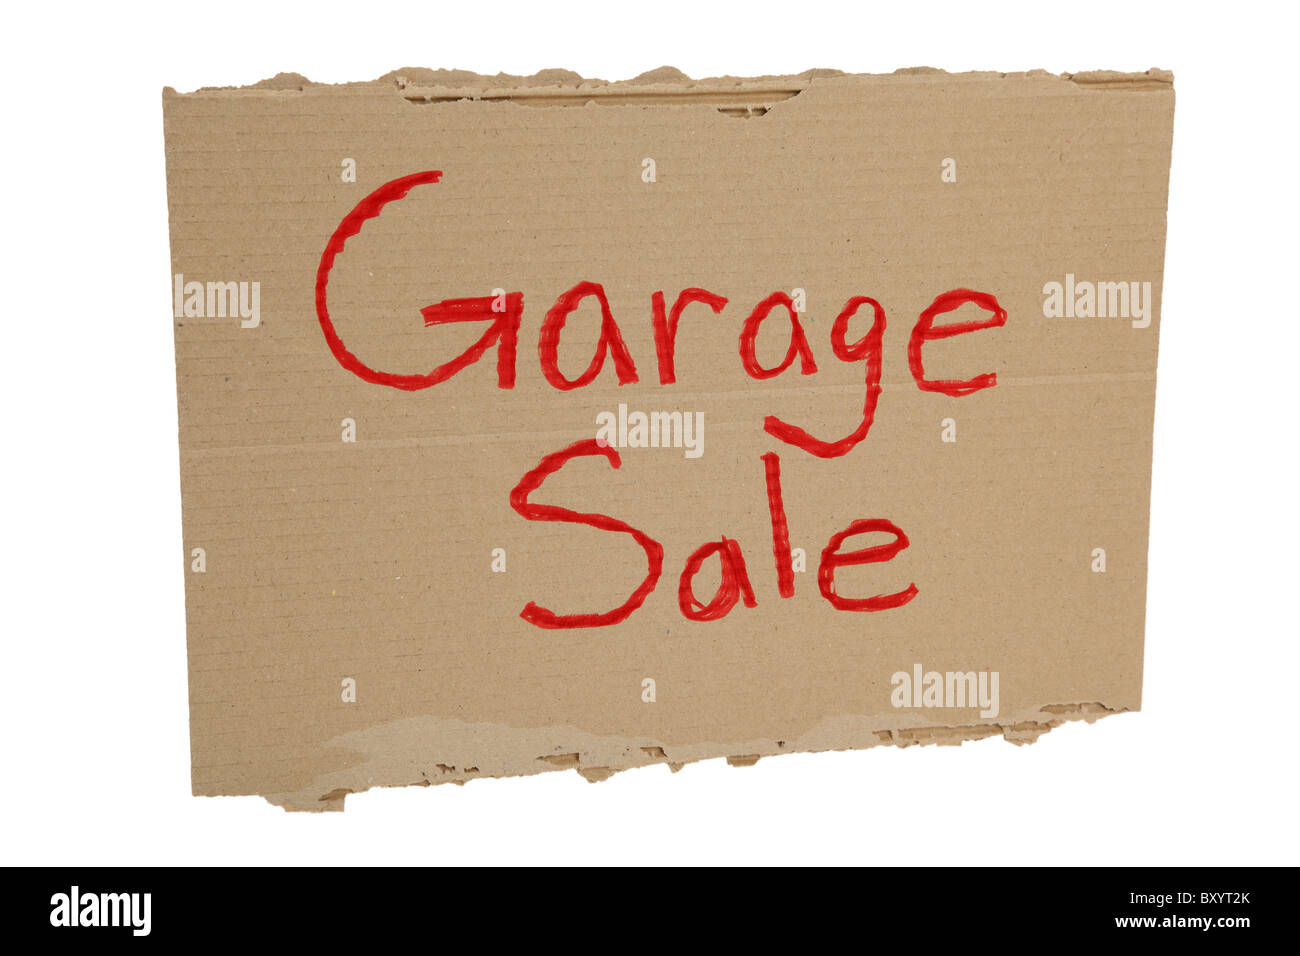 Cardboard Garage Sale sign on white background - Stock Image